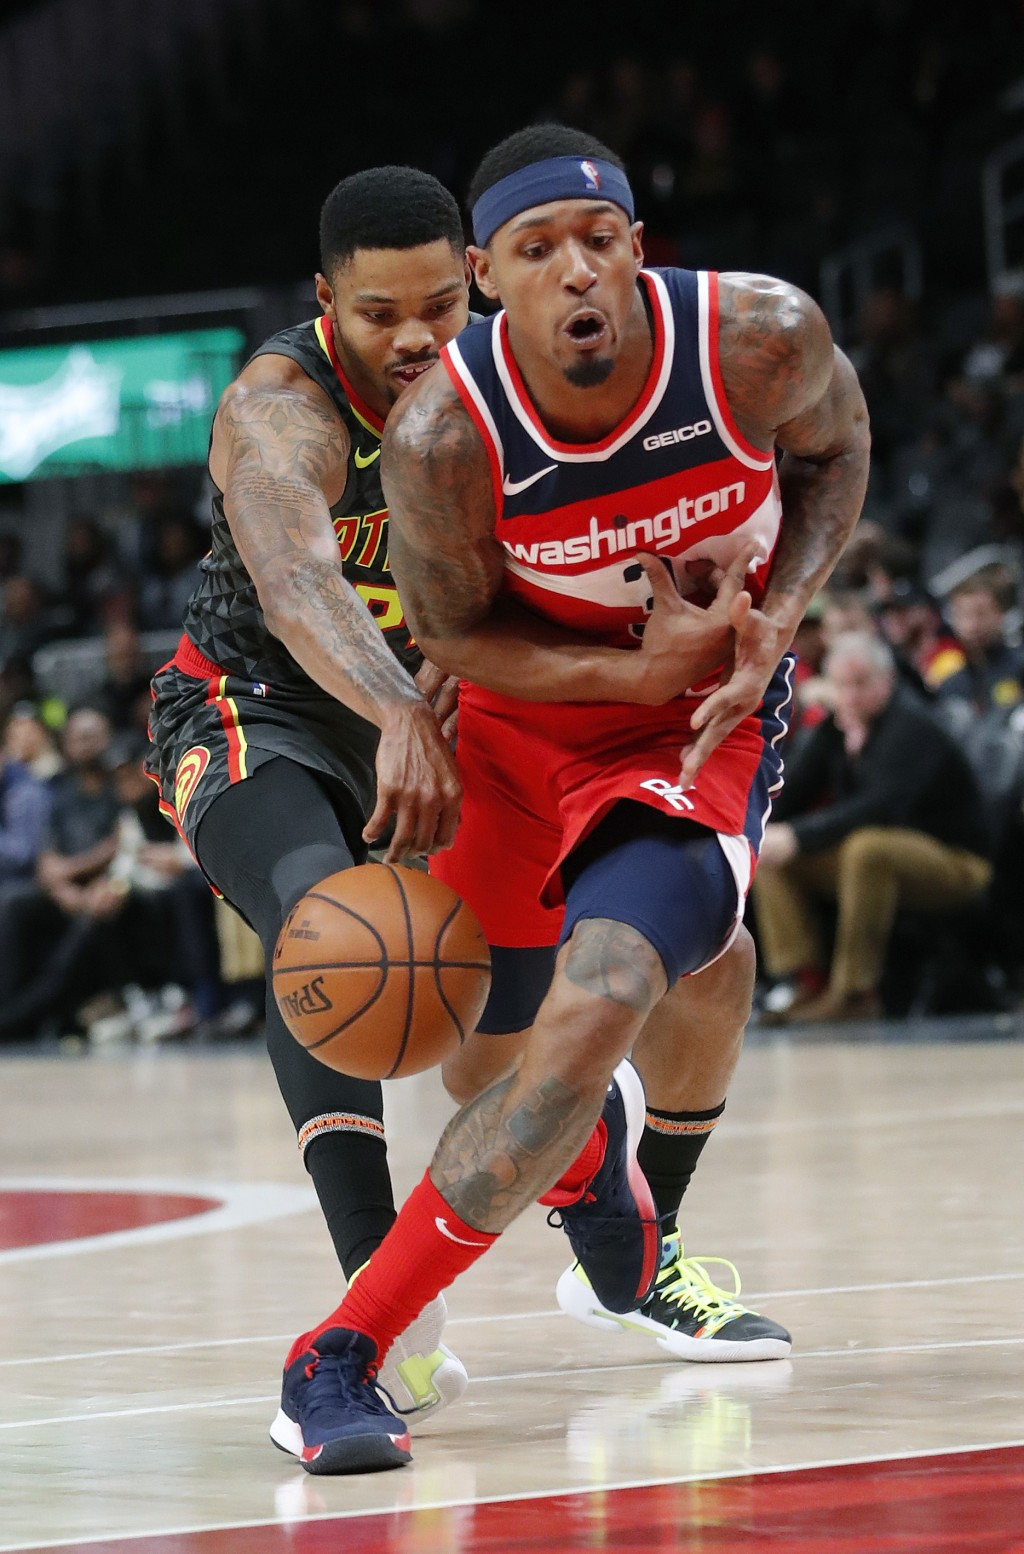 Washington Wizards guard Bradley Beal (3) is fouled by Atlanta Hawks guard Kent Bazemore (24) as he drives to the basket during the second half of an